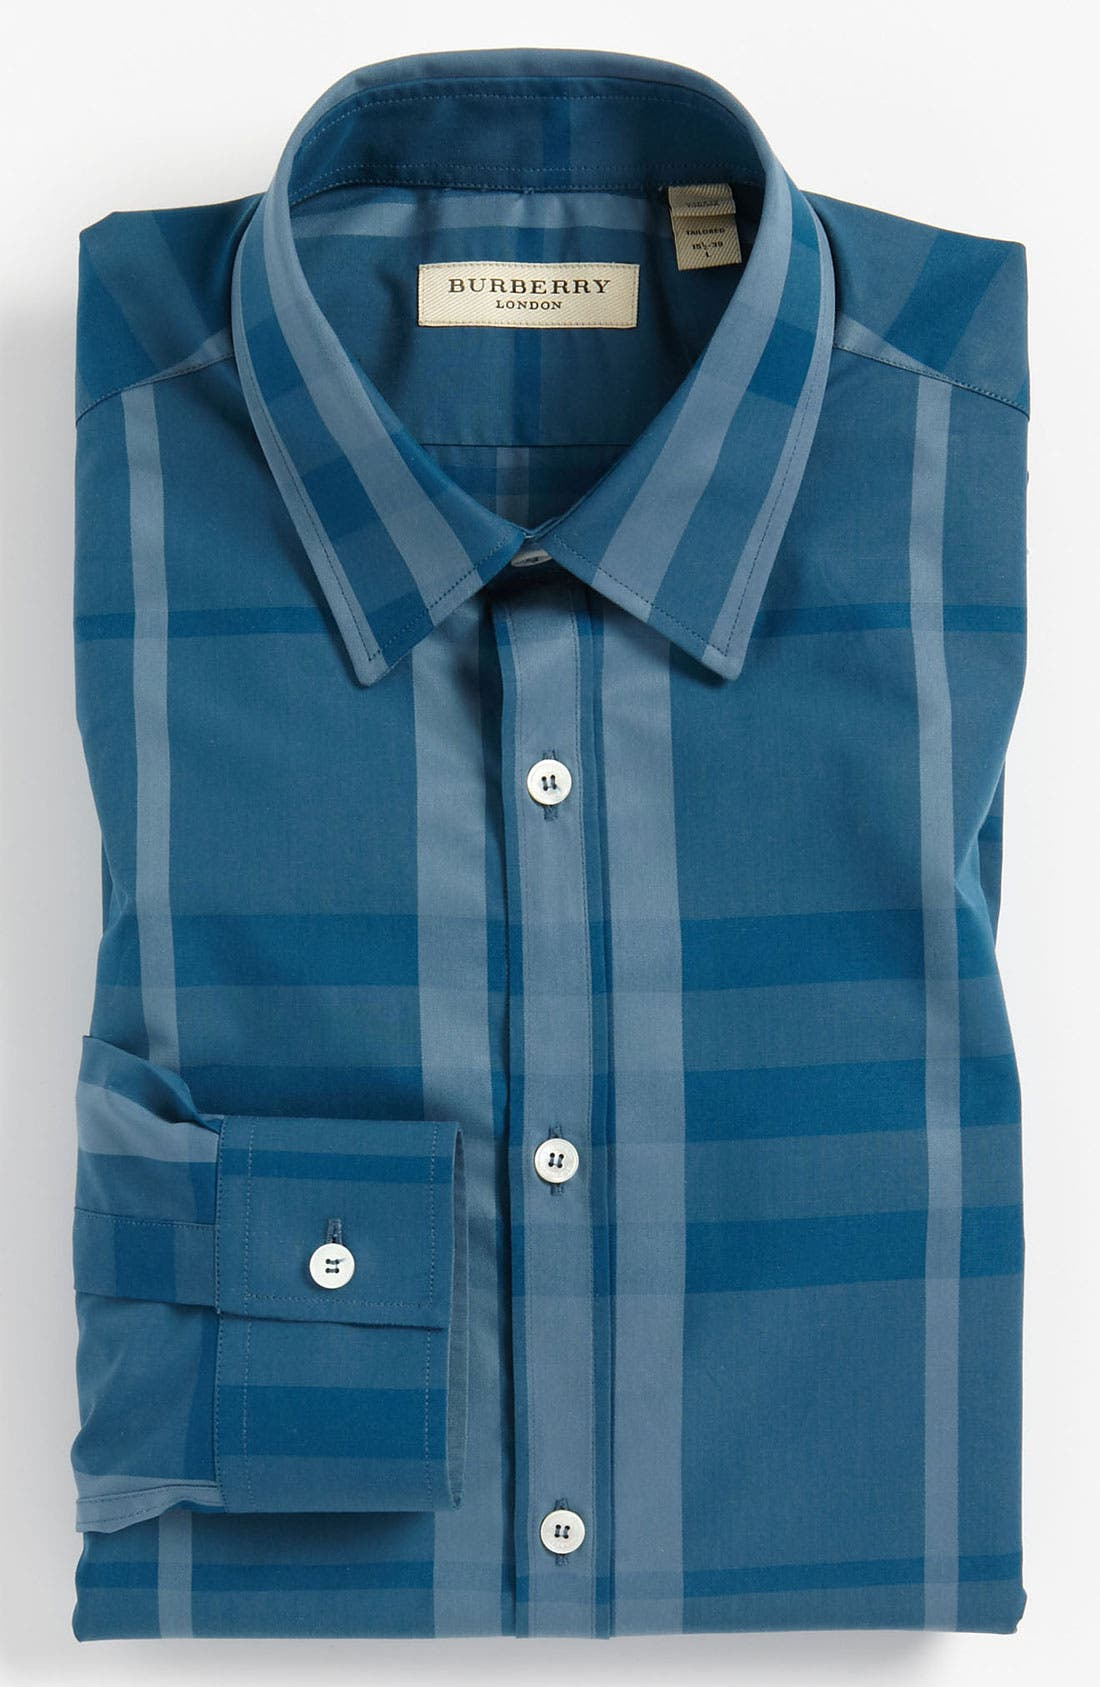 Main Image - Burberry London Modern Fit Dress Shirt